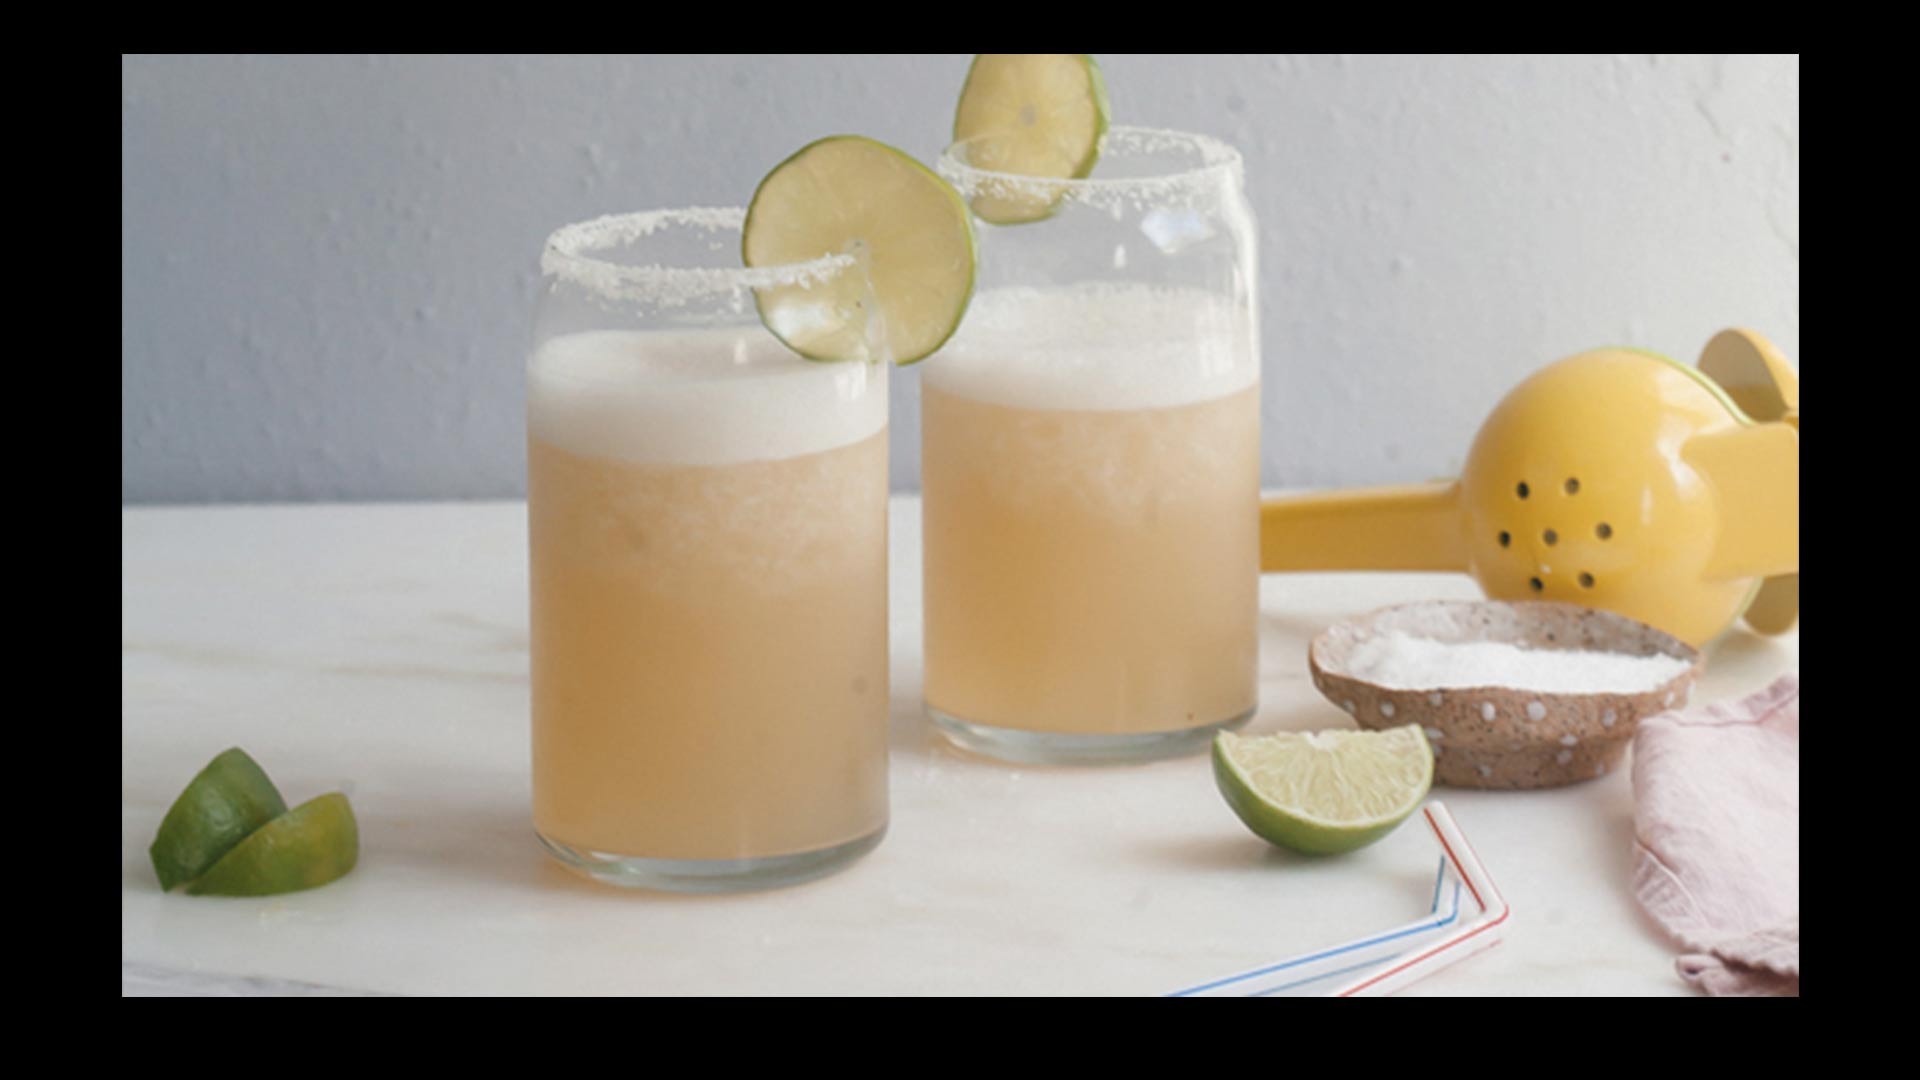 plus_food_beergarita_hero